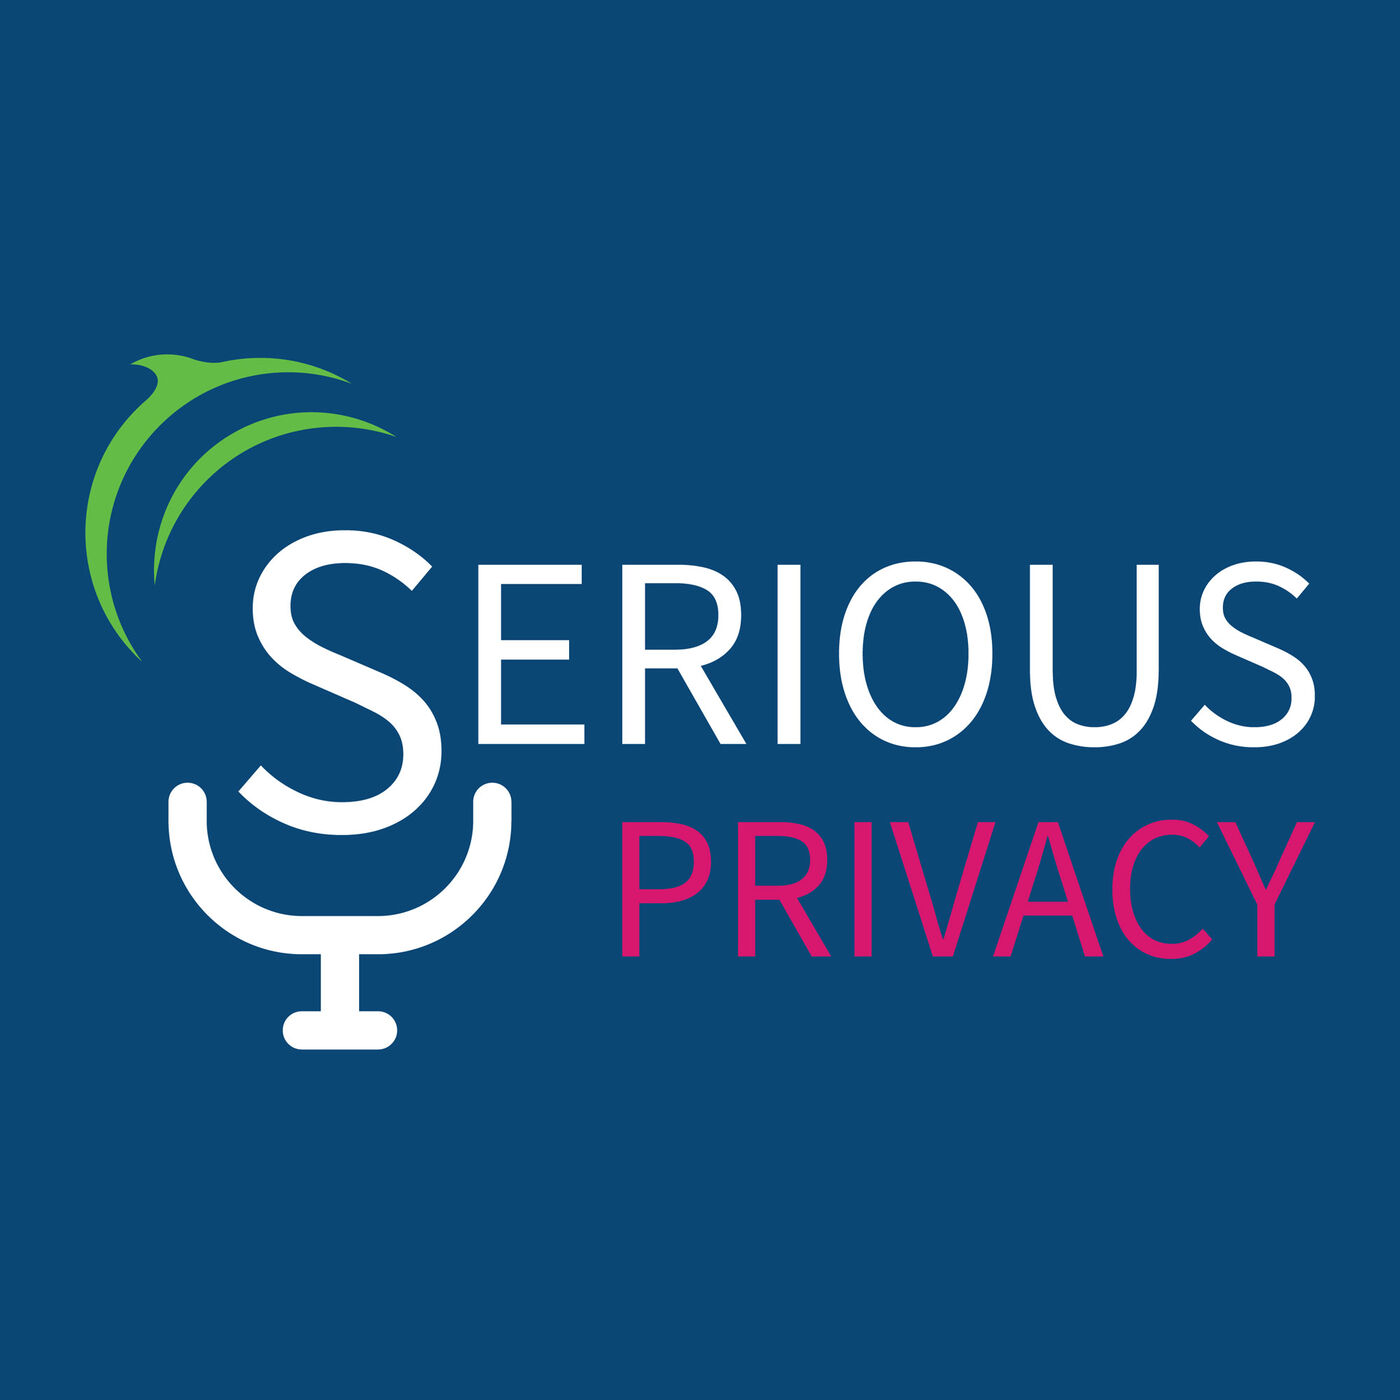 Heigh-Ho, Heigh-Ho, it's off to work we go: Transitioning into Privacy as an Experienced Professional (with Tom Besore)